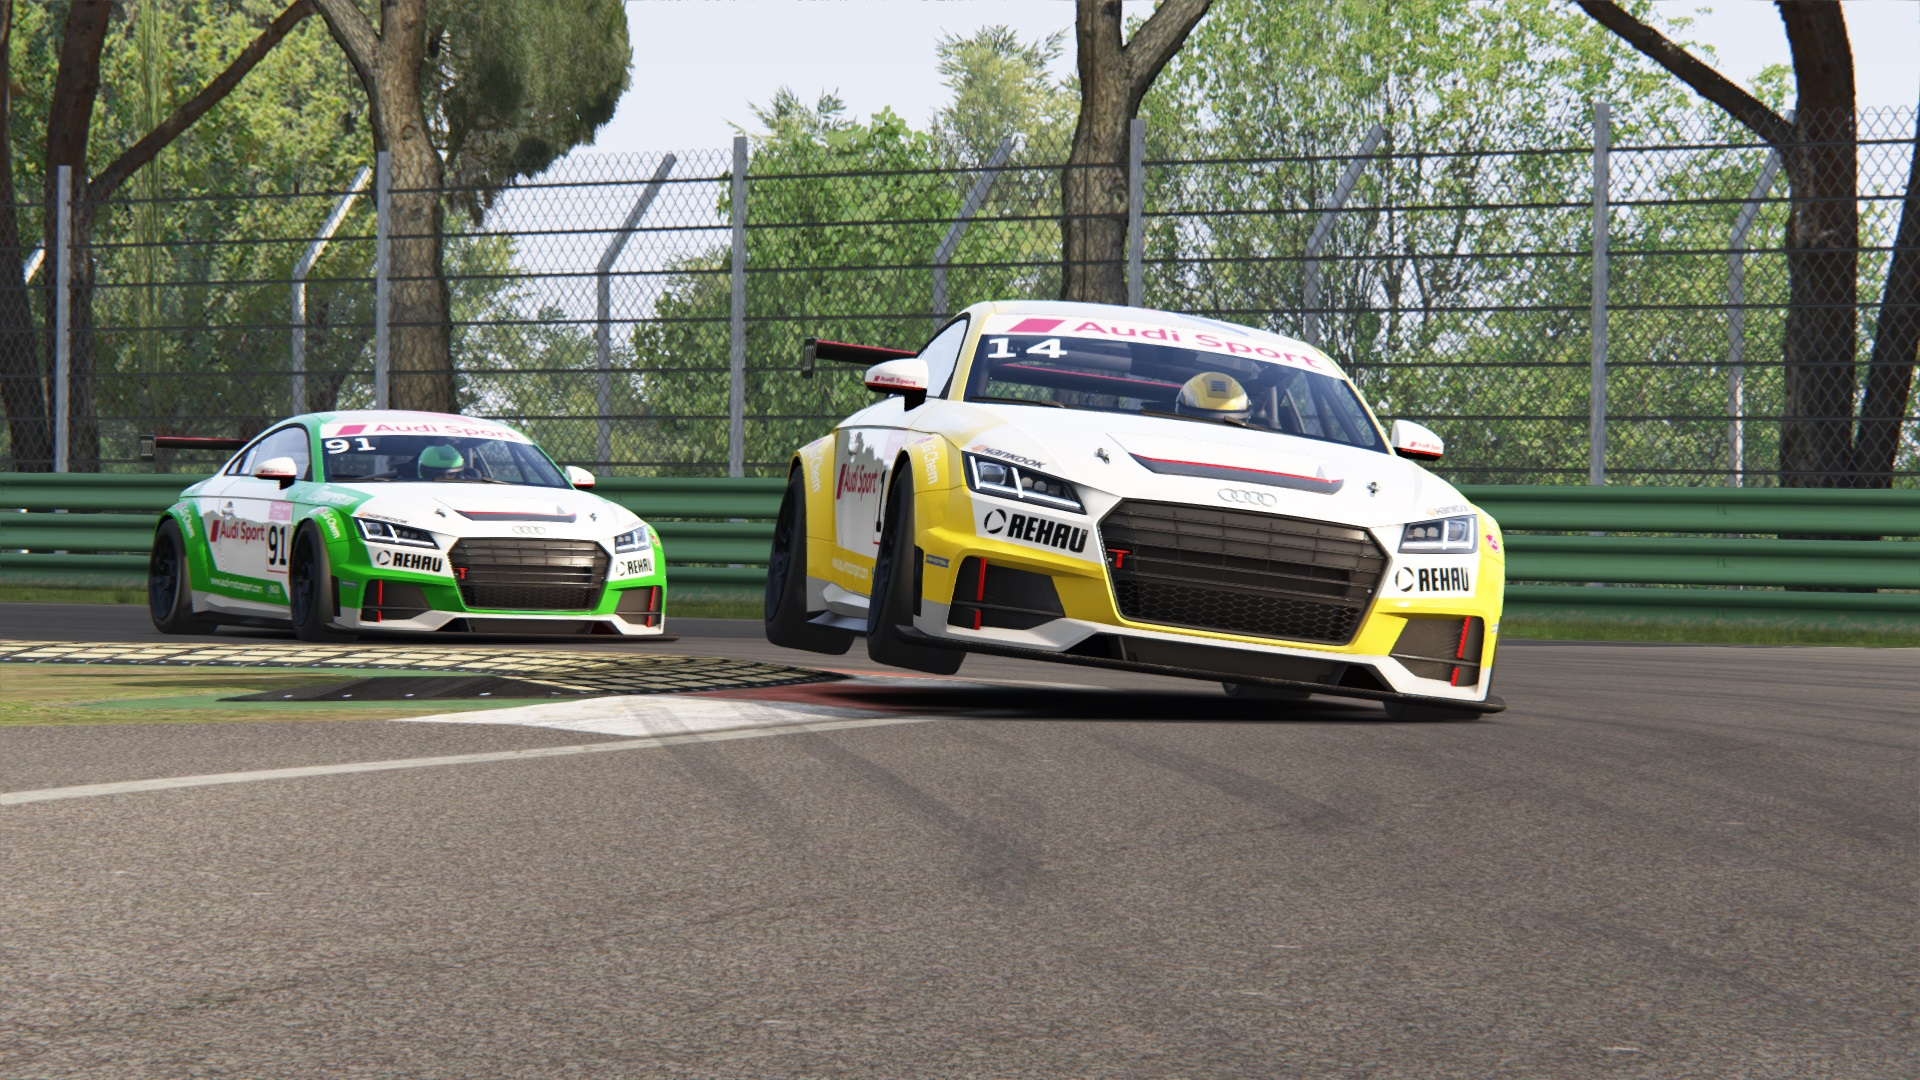 Screenshot_ks_audi_tt_cup_imola_5-7-117-23-9-48.jpg